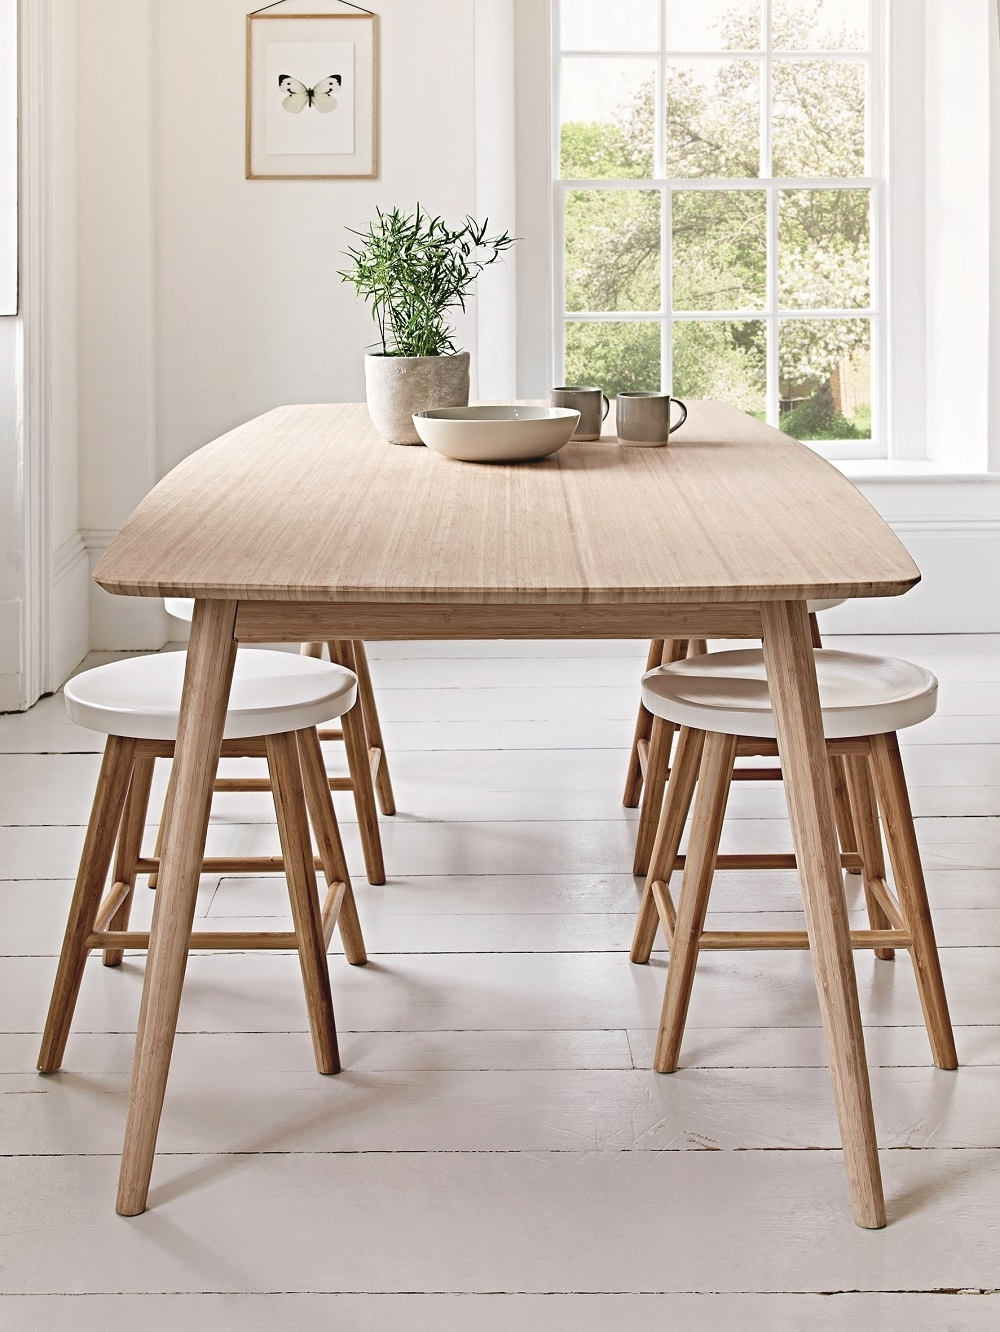 Scandinavian Dining Tables And Chairs Inside Well Known Scandinavian Style Dining Room Furniture (View 17 of 25)